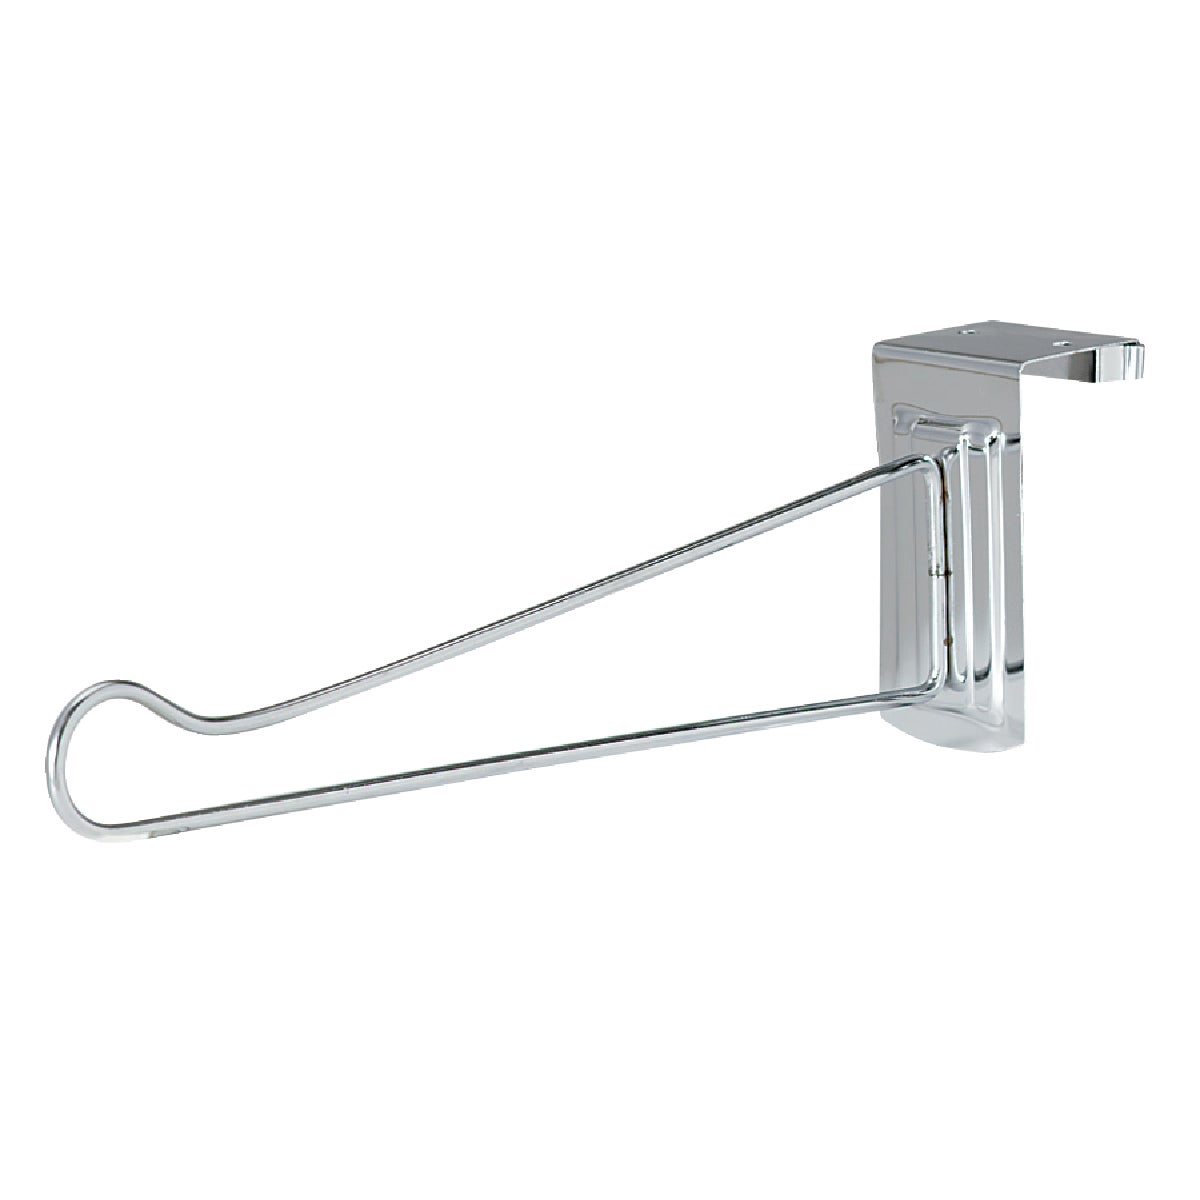 CHROME OVER-DOOR HANGER - 38500 by Decko Bath